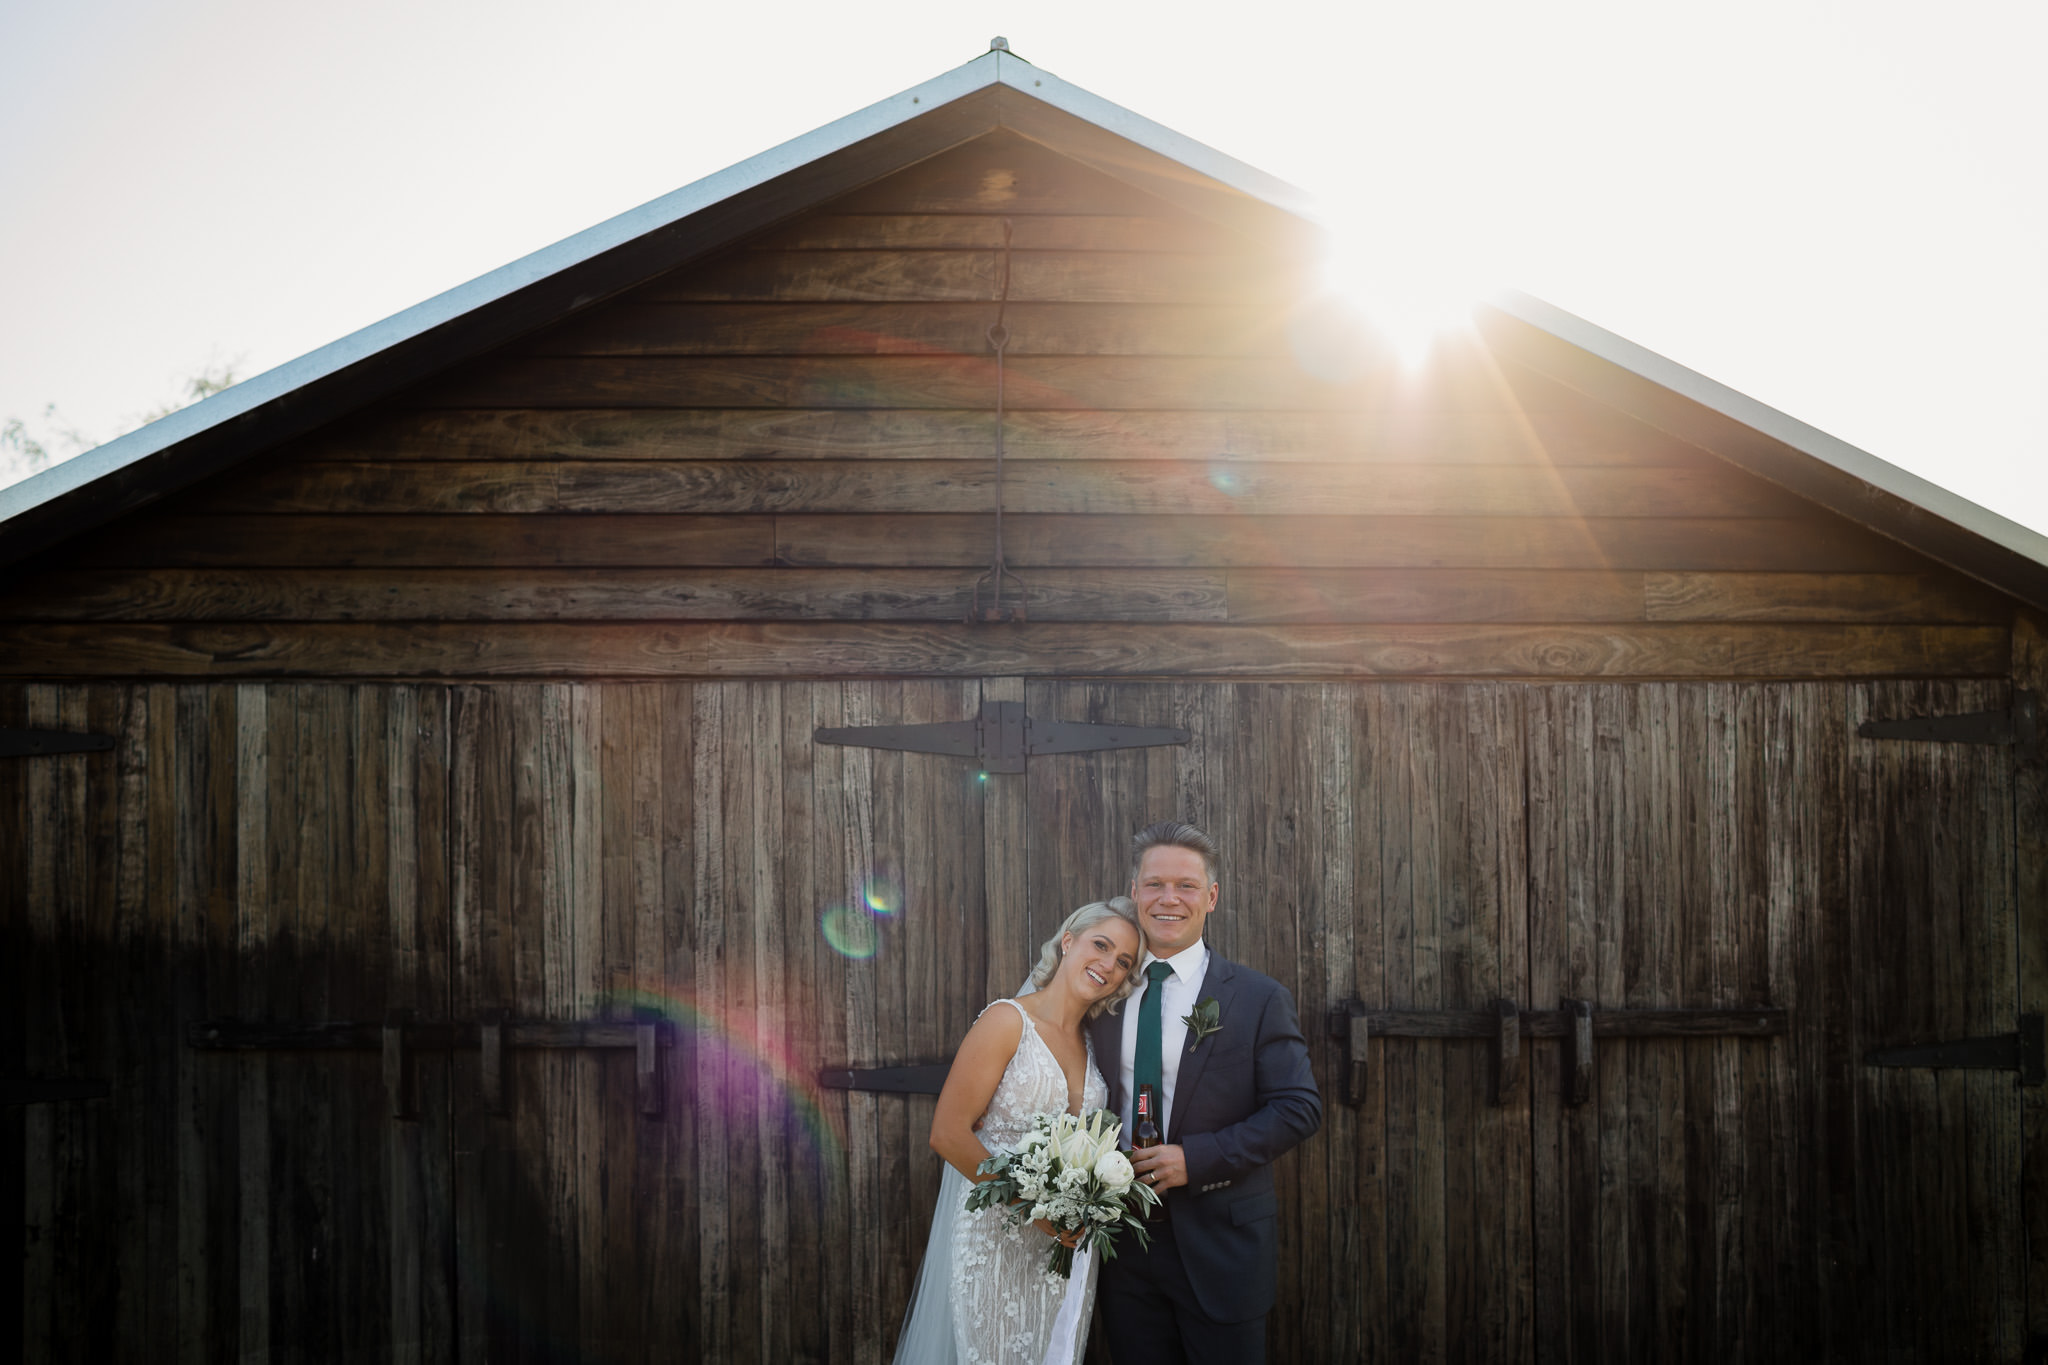 bride and groom smiling at the camera with awesome sun flare striking the historic barn they are standing against